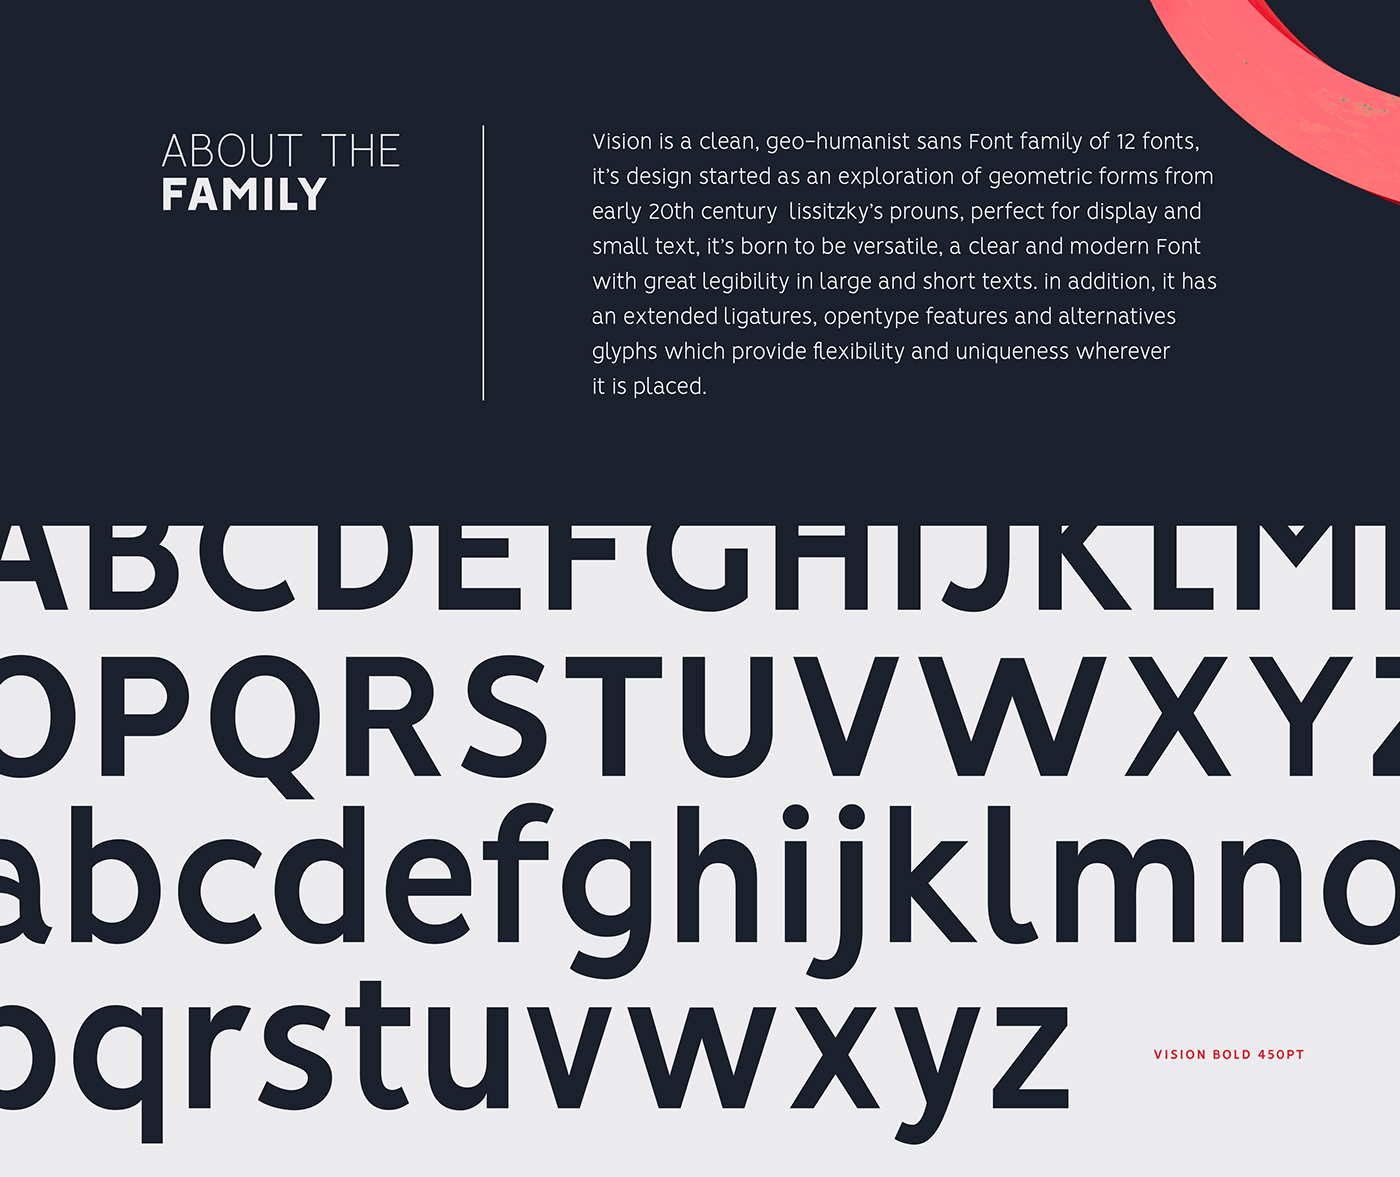 VISION - FREE FONT FAMILY (12 FONTS) on Behance